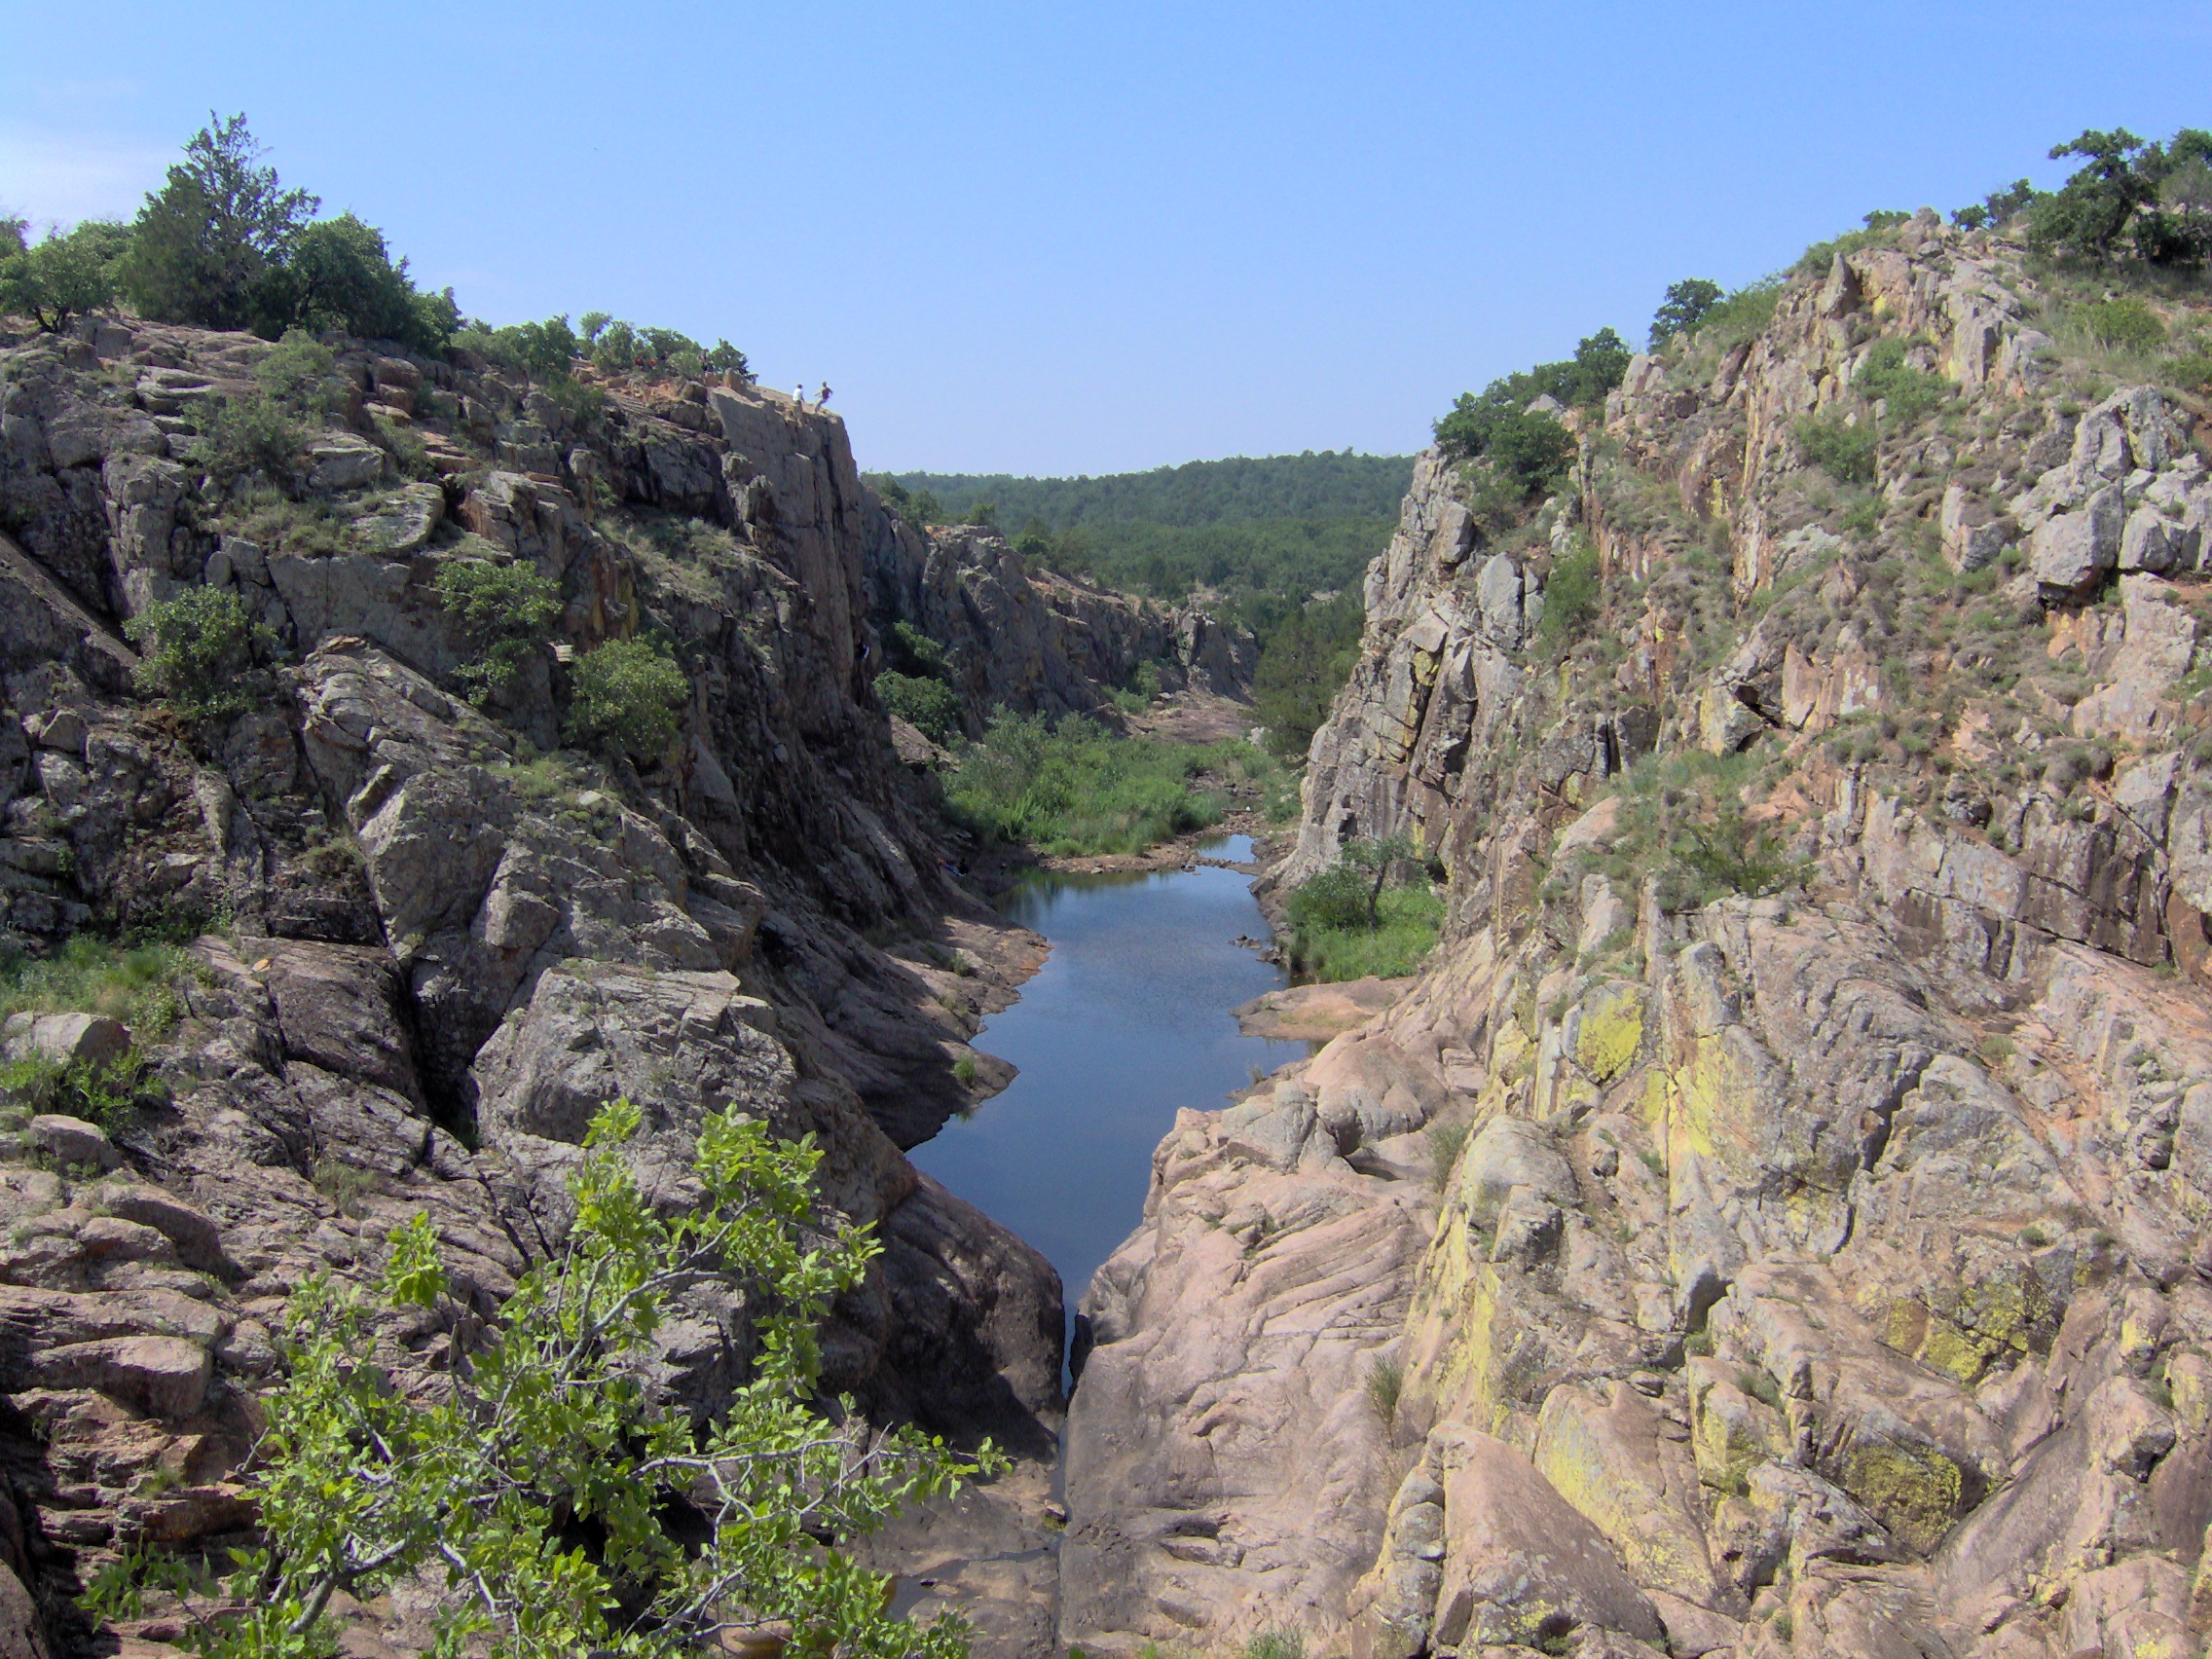 File:WICHITA Canyon.jpg - Wikimedia Commons